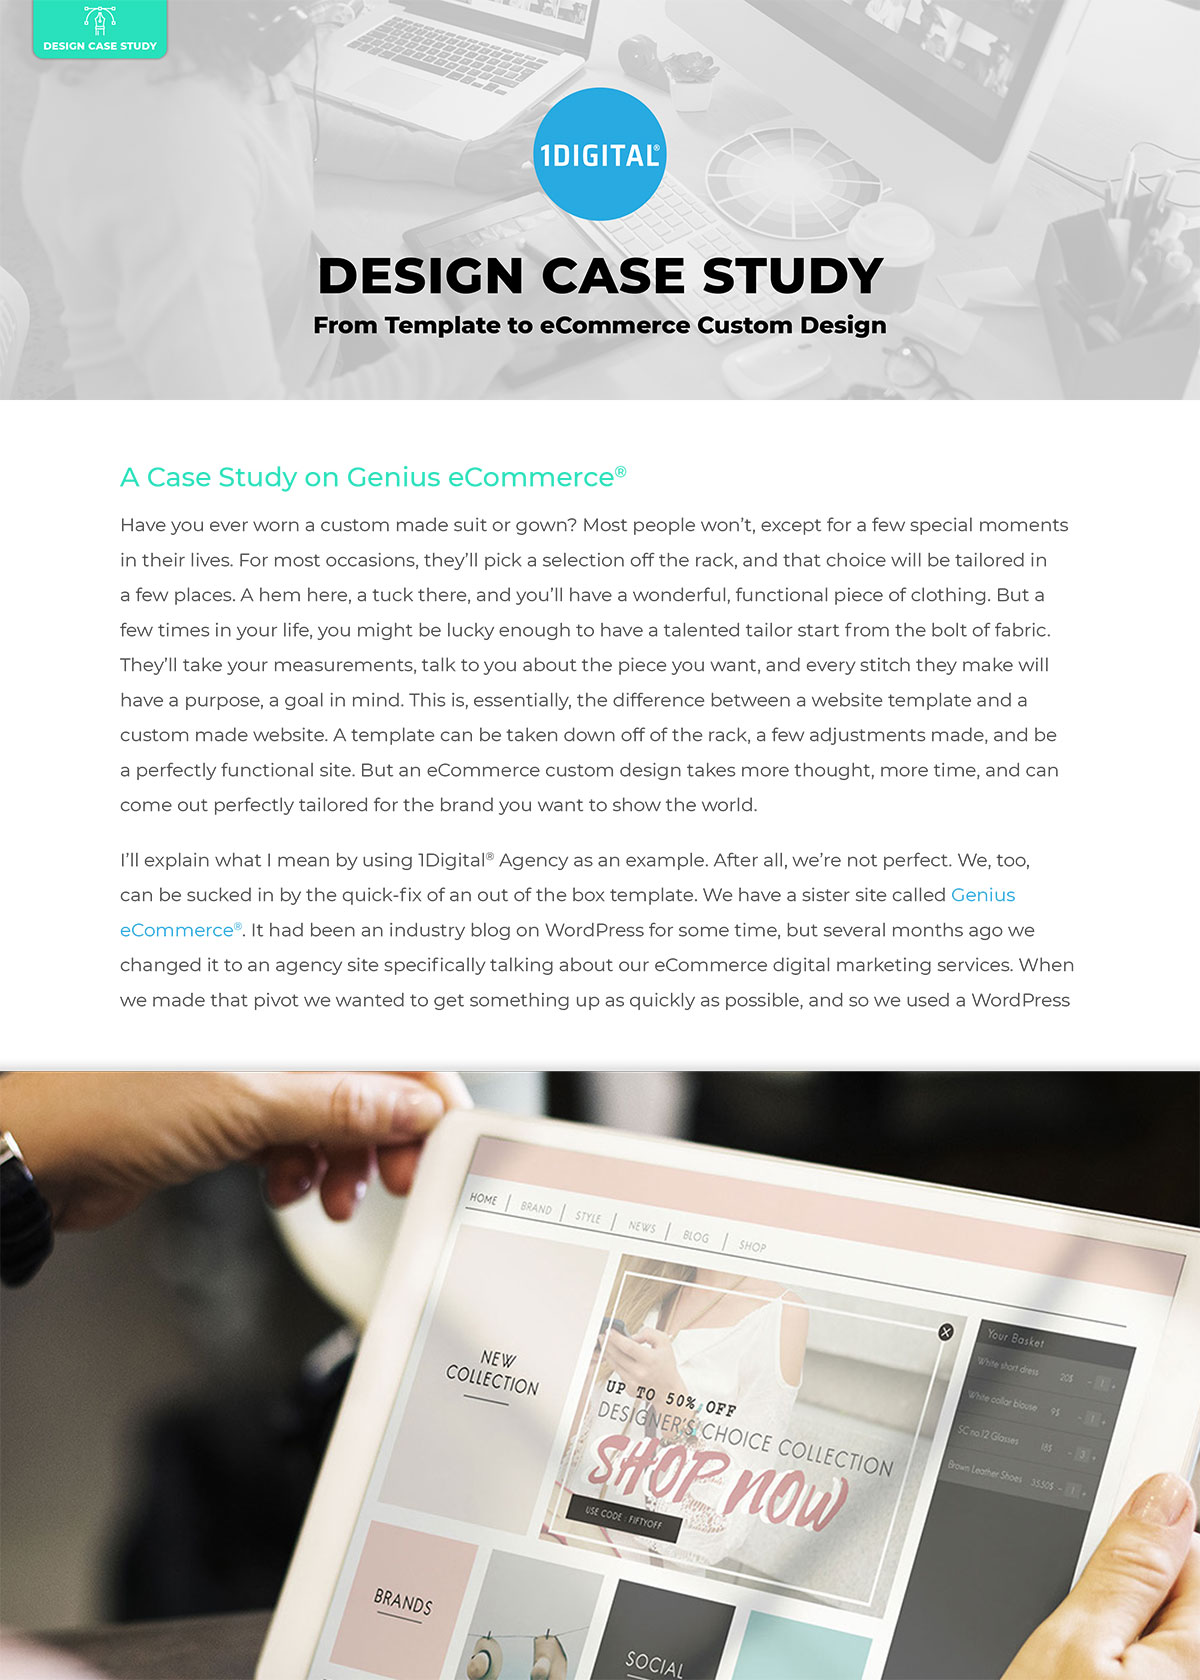 From Template to eCommerce Custom Design